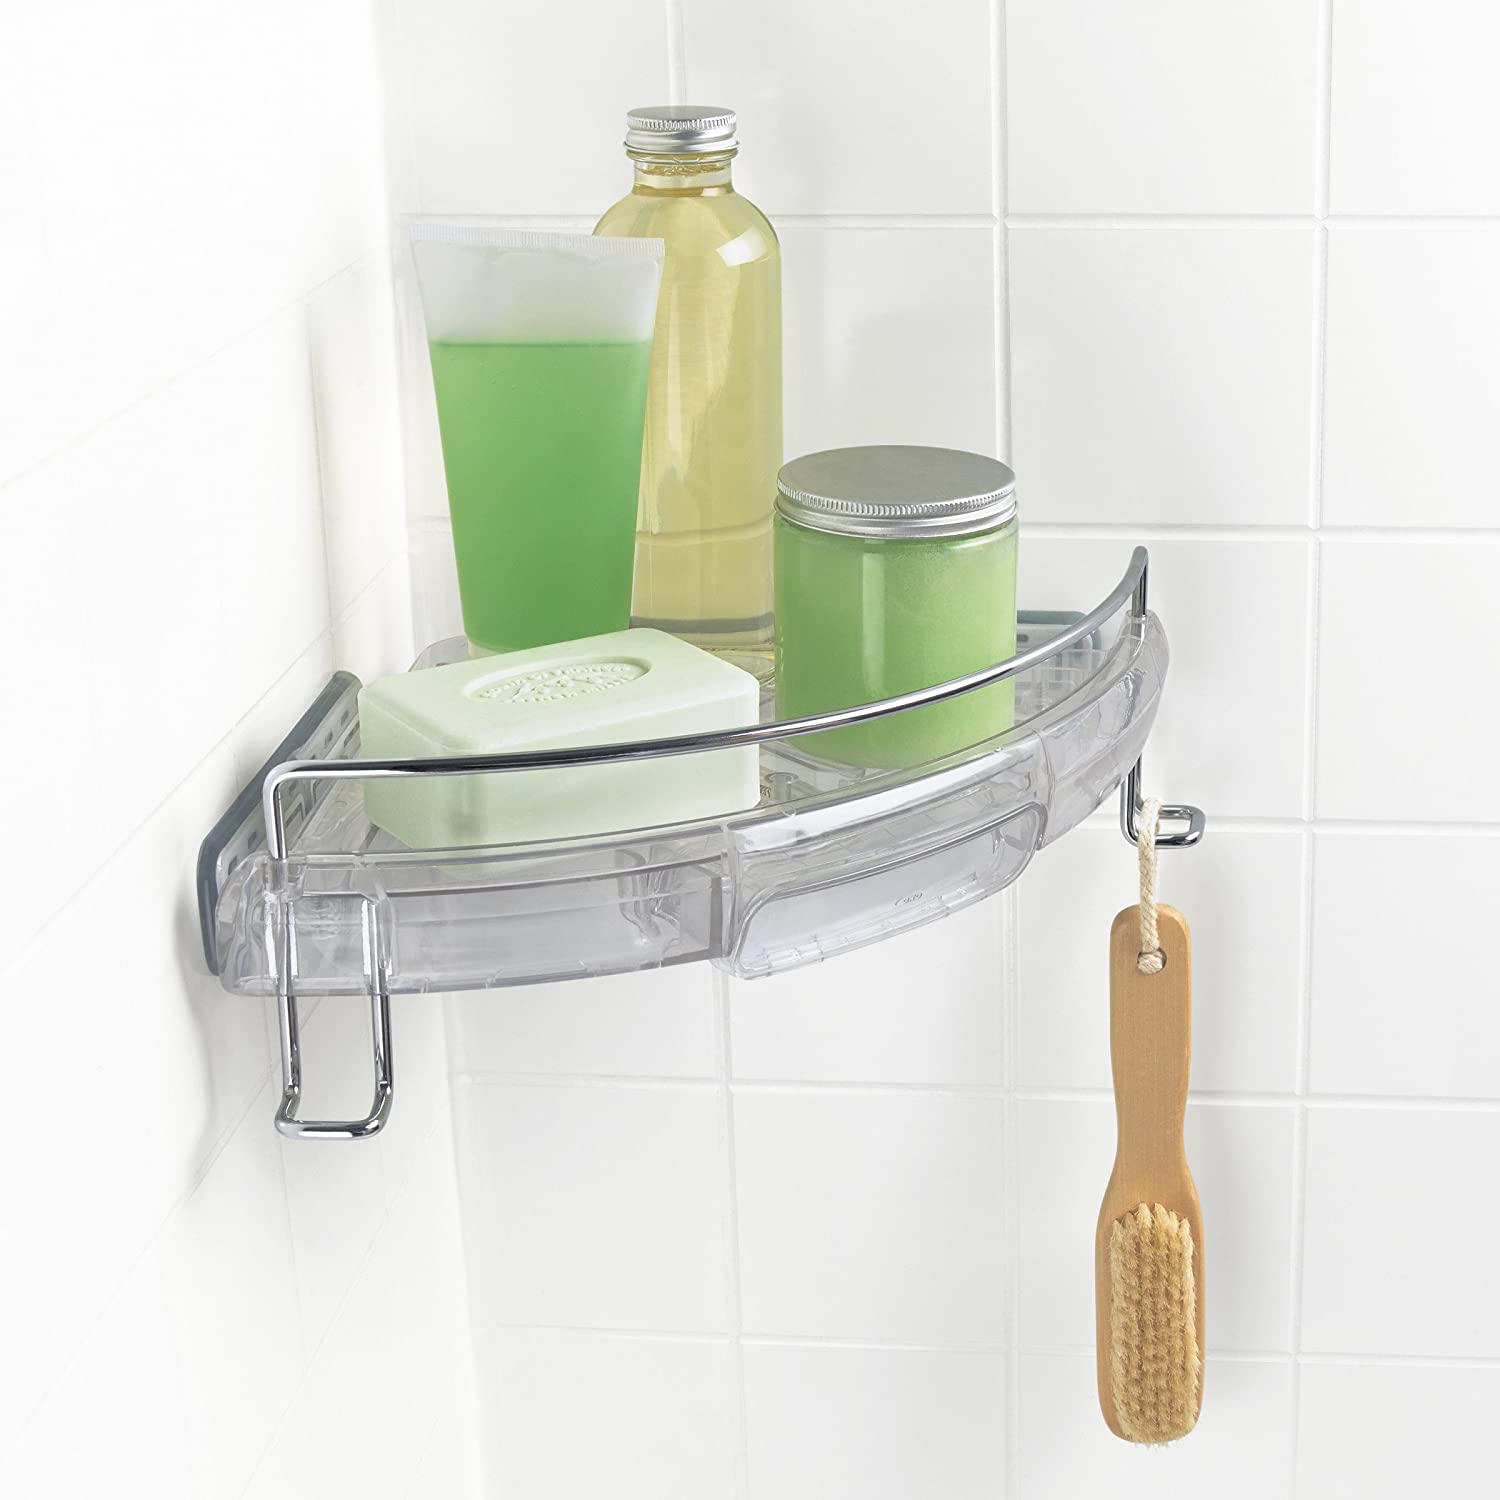 OXO Good Grips Press Sure Corner Shower Caddy: Amazon.co.uk: Kitchen ...